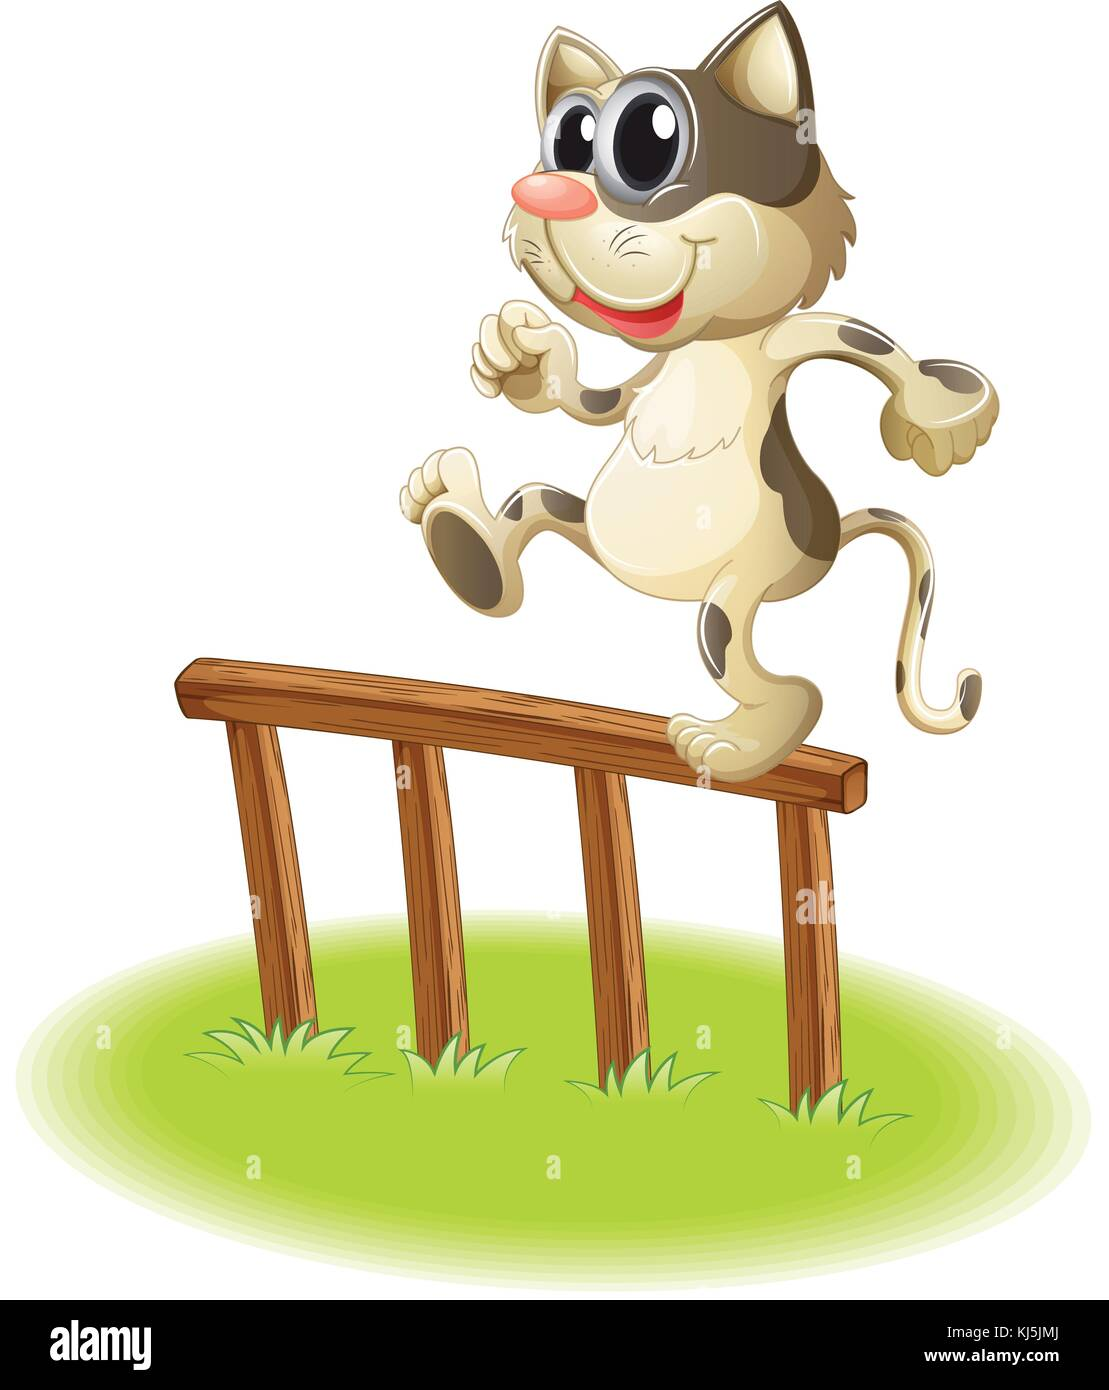 Illustration of a cat crossing the fence on a white background - Stock Vector